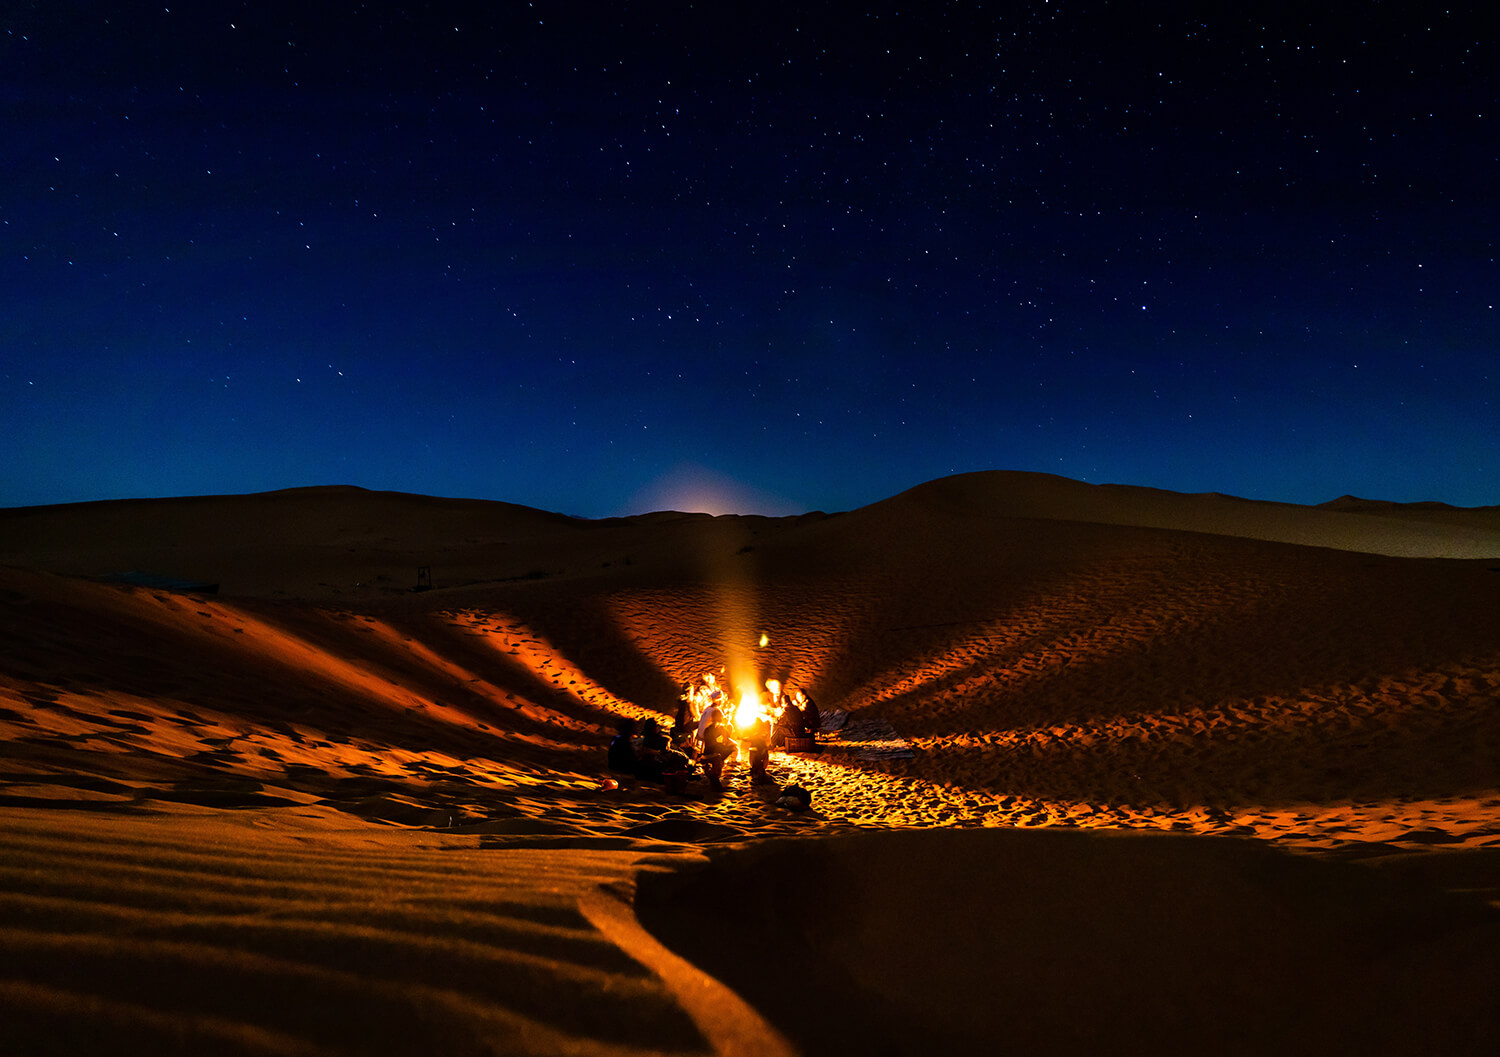 Sahara Desert Tour - A night in the desert